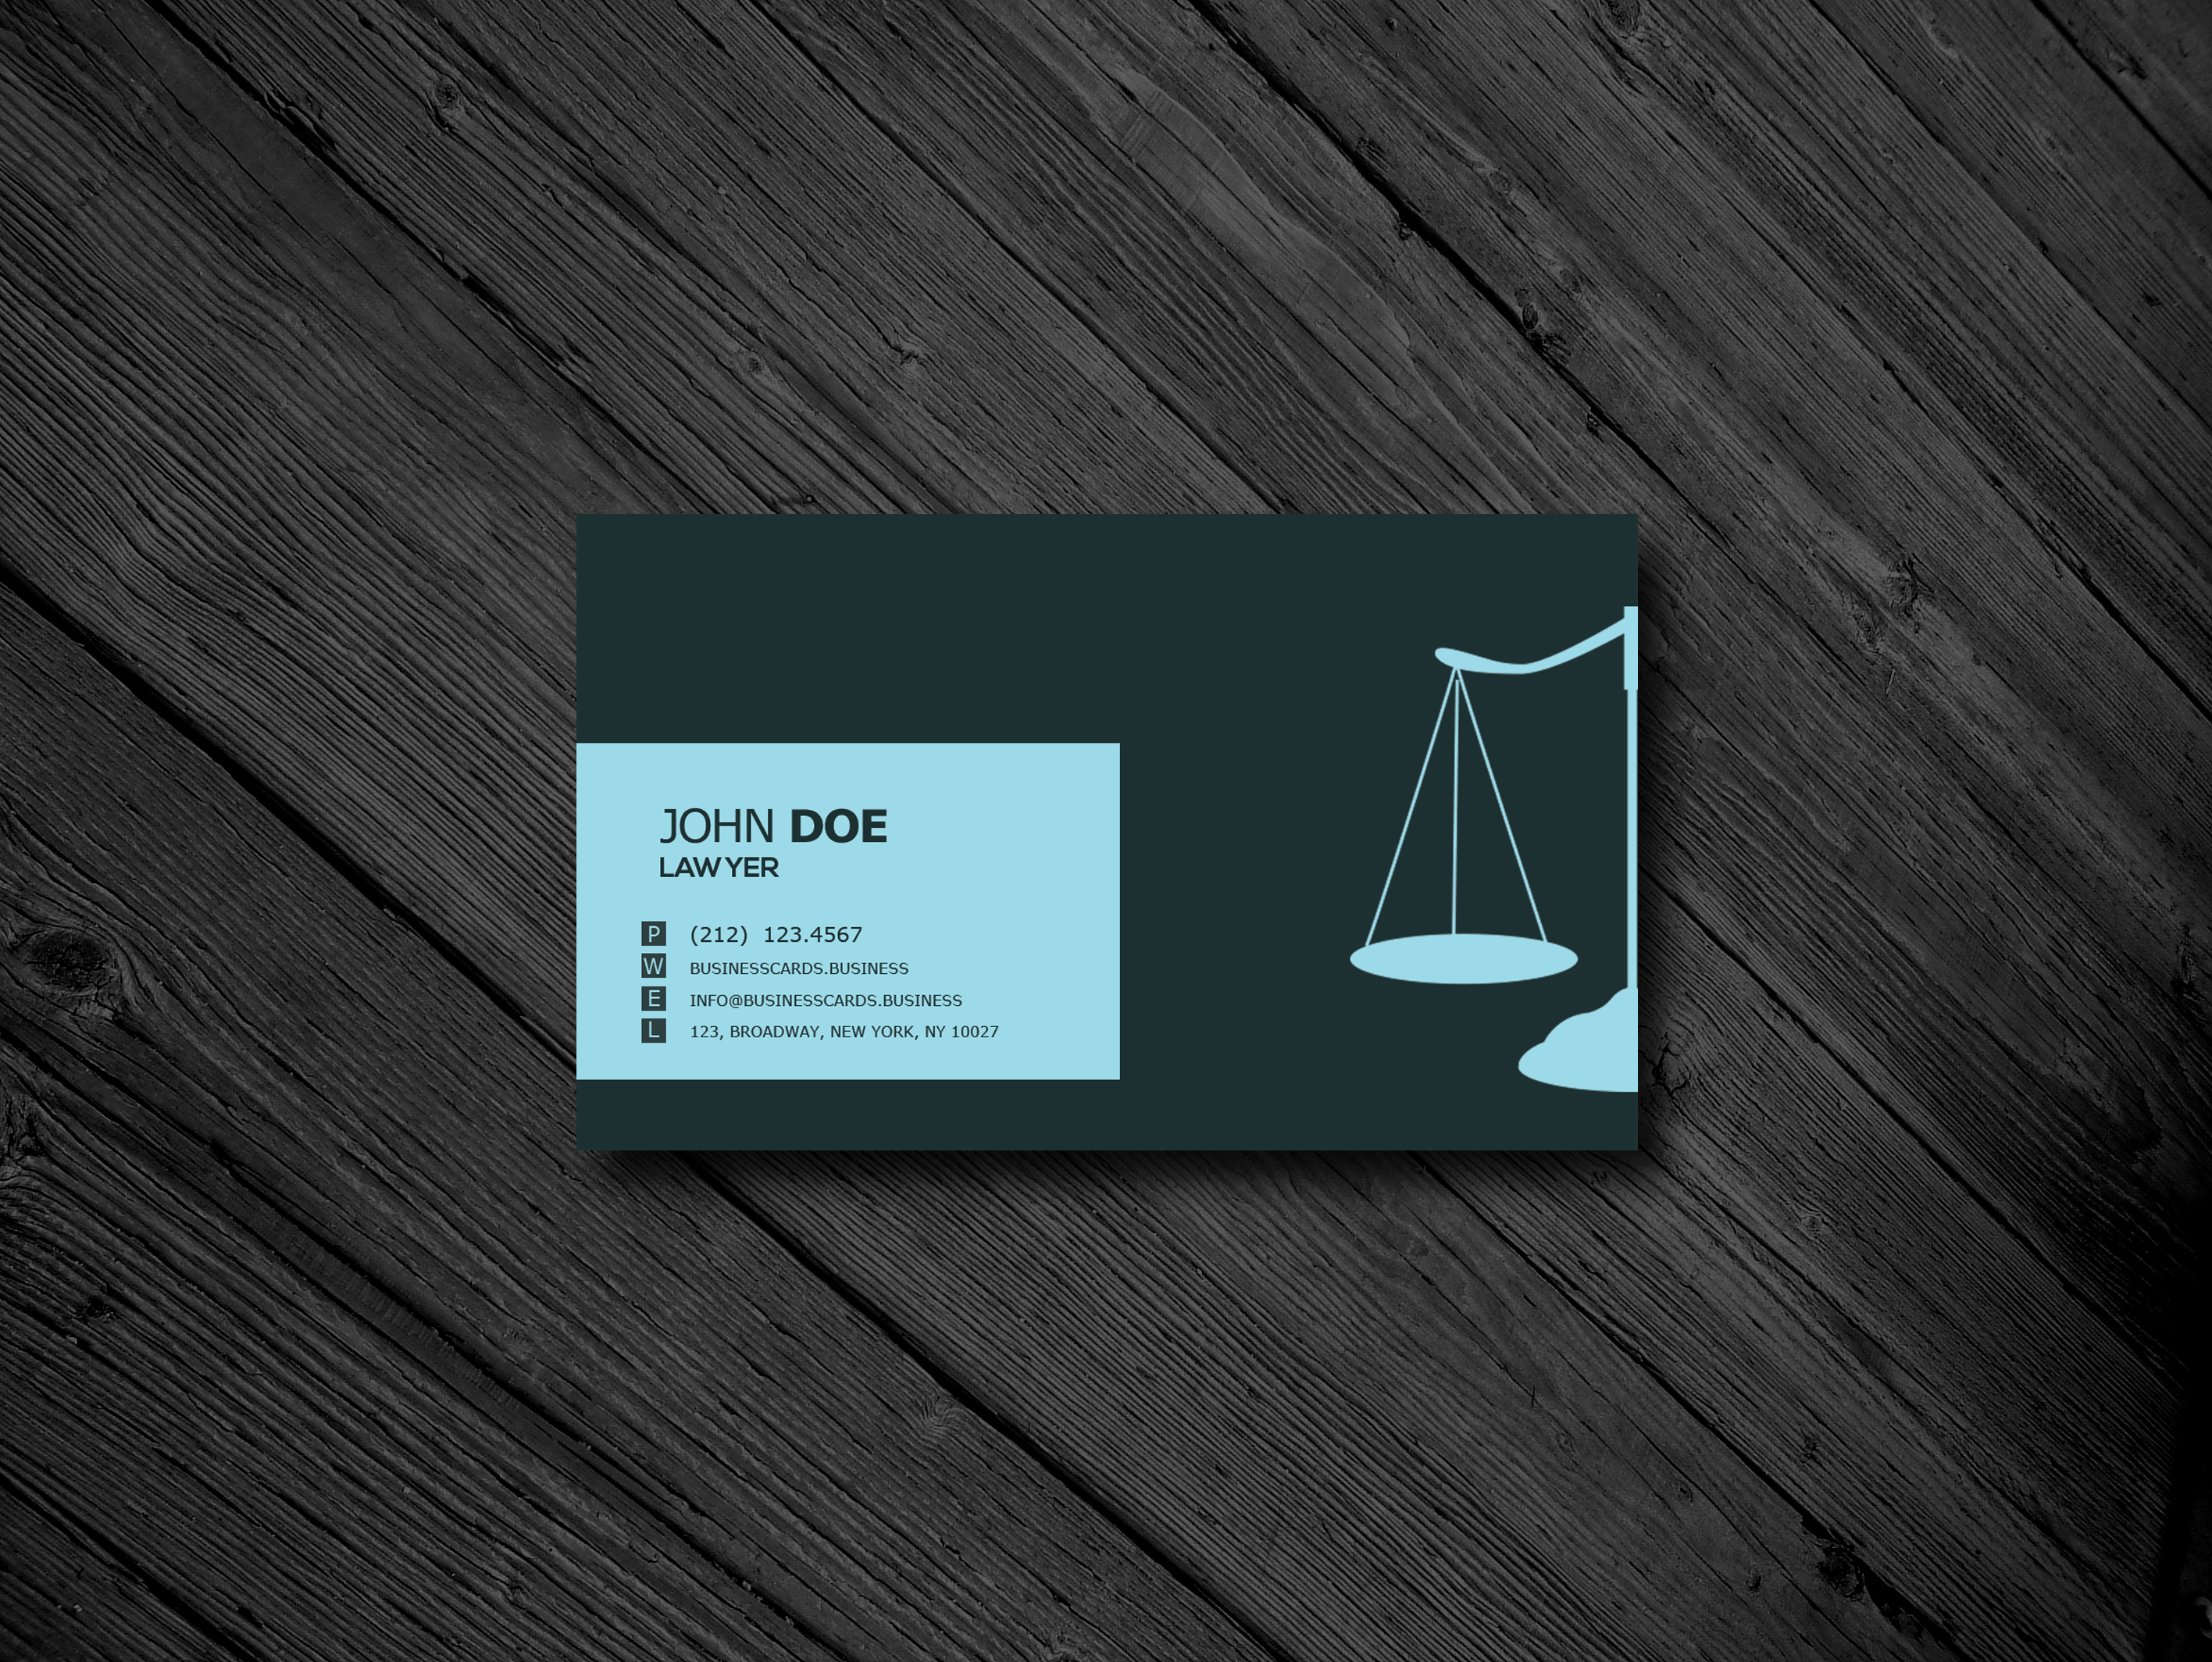 Free business card templates business cards templates free lawyer business card psd template accmission Choice Image